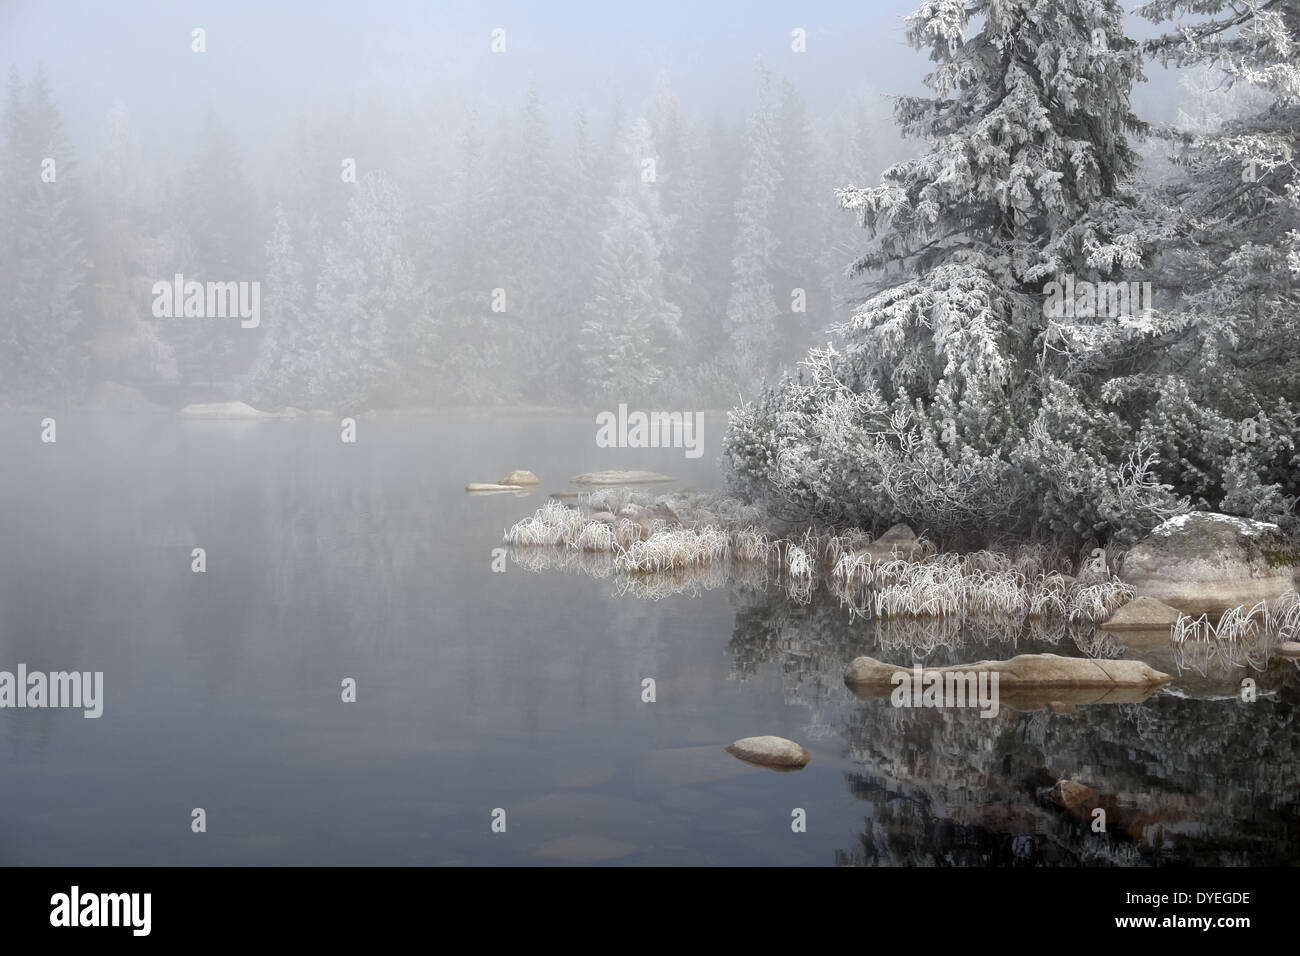 Landscape with trees,waters and fogs on the Strbske Pleso,Slovakia - Stock Image